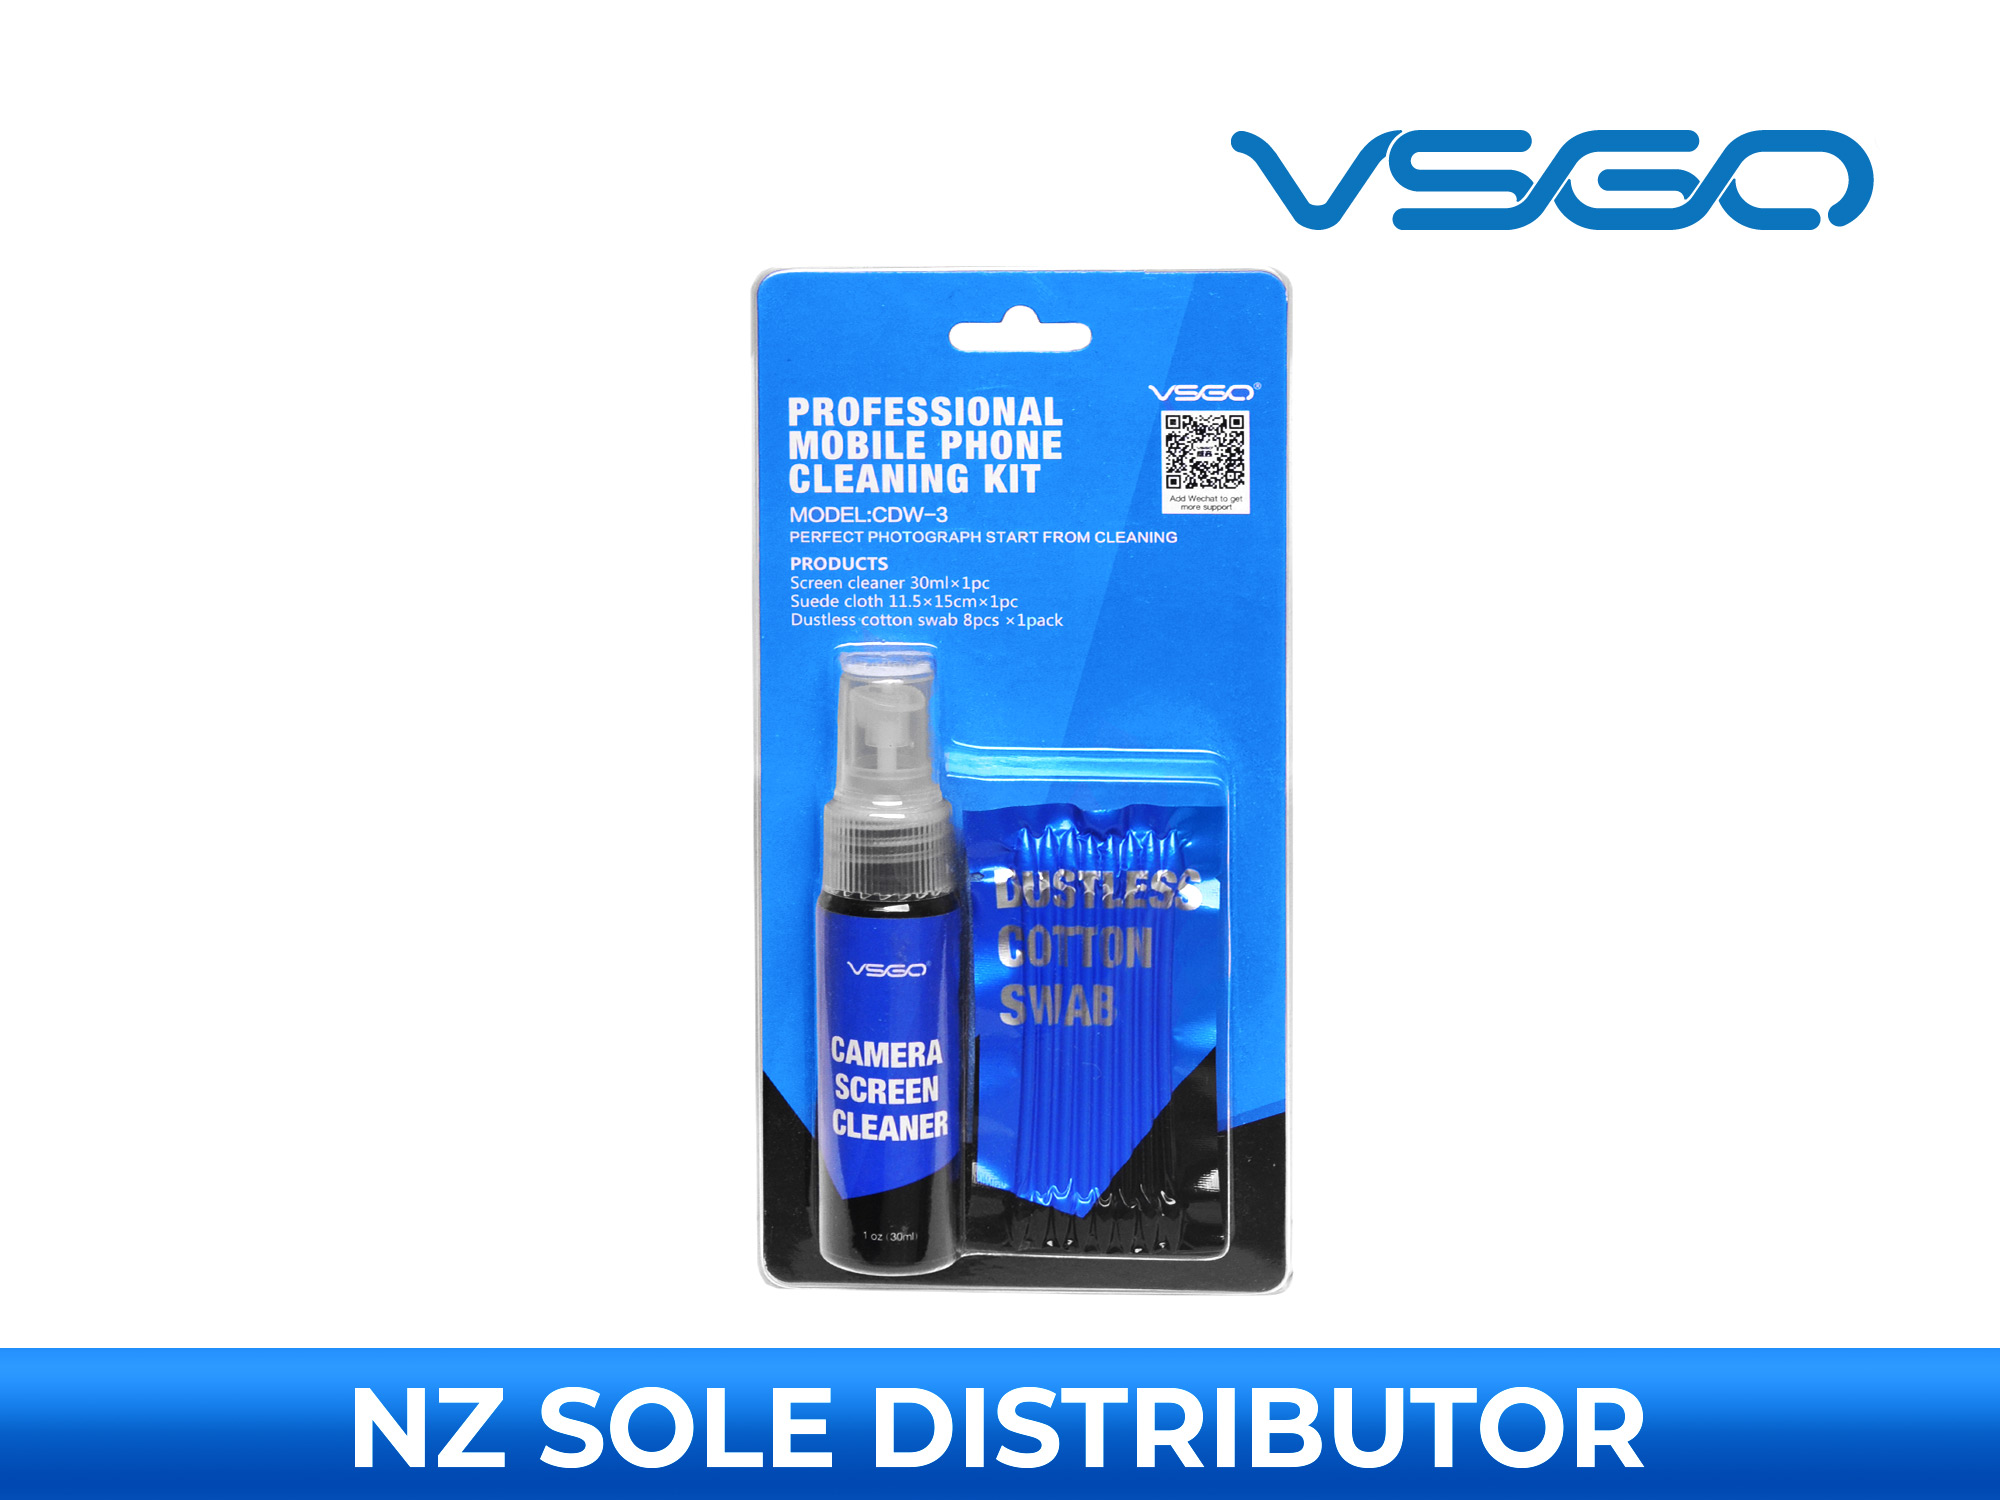 VSGO Professional Mobile Phone Cleaning Kit